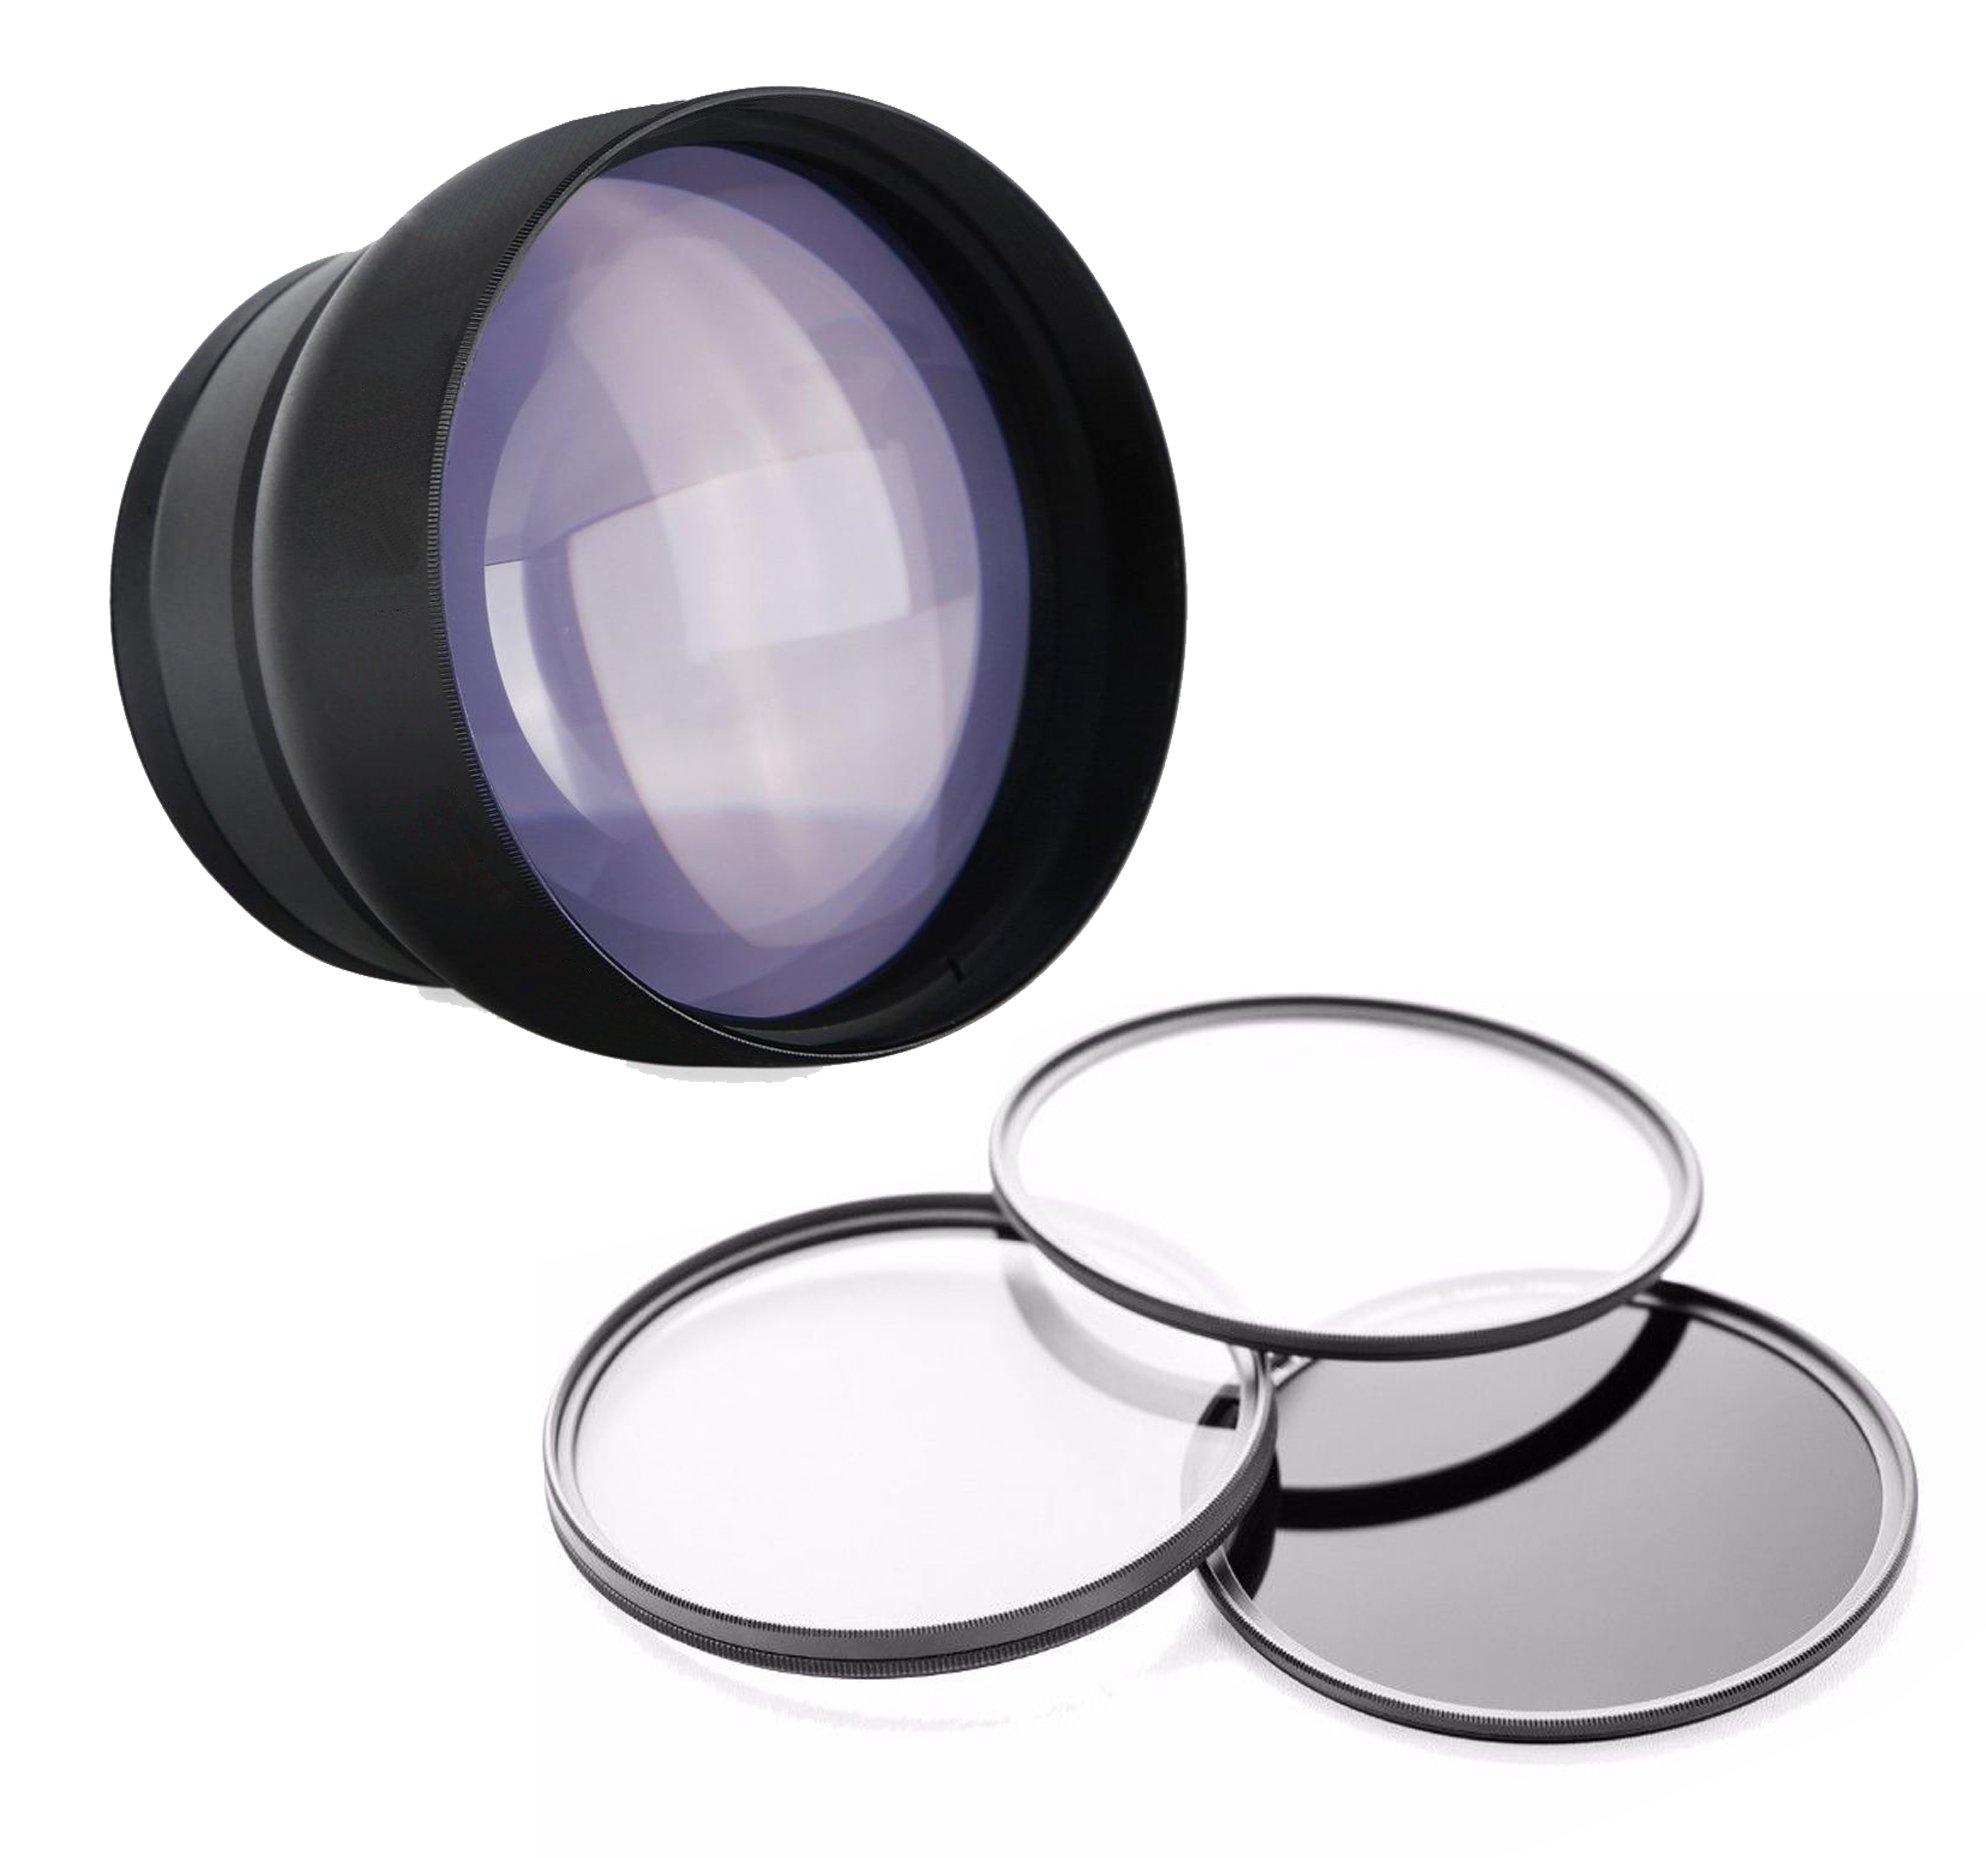 Sony HDR-CX900 2.2X High Definition Super Telephoto Lens + 62mm 3 Piece Filter Kit + Zeiss Cloth